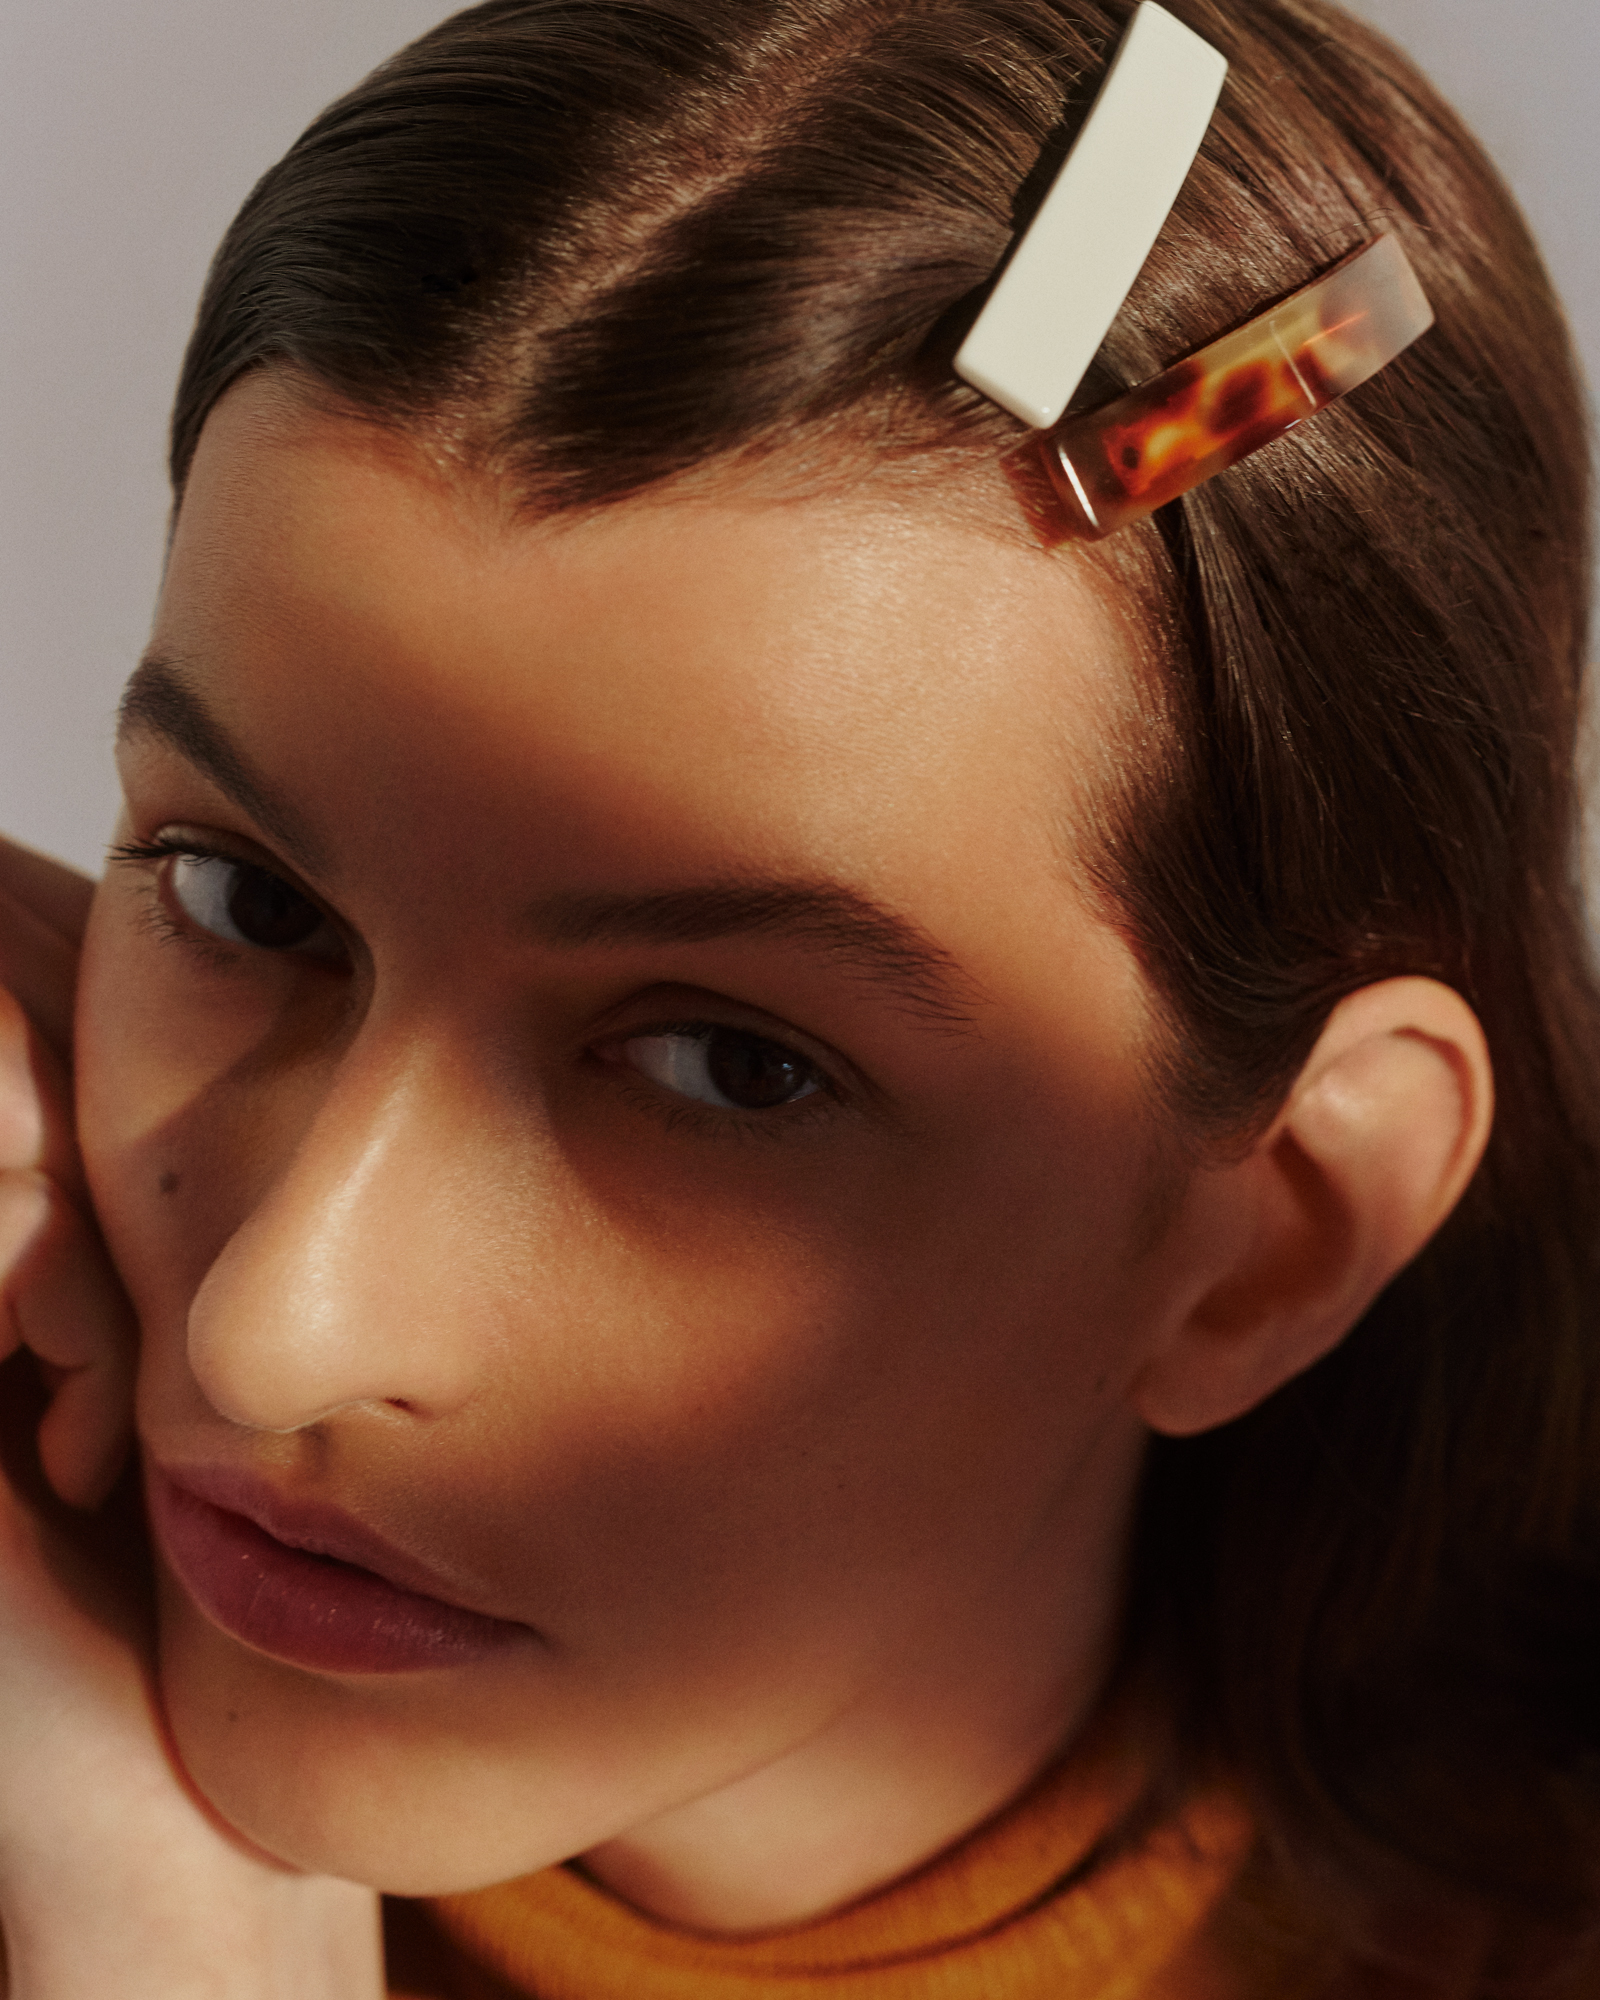 Fanette Guilloud for Andy Wolf X Bruna